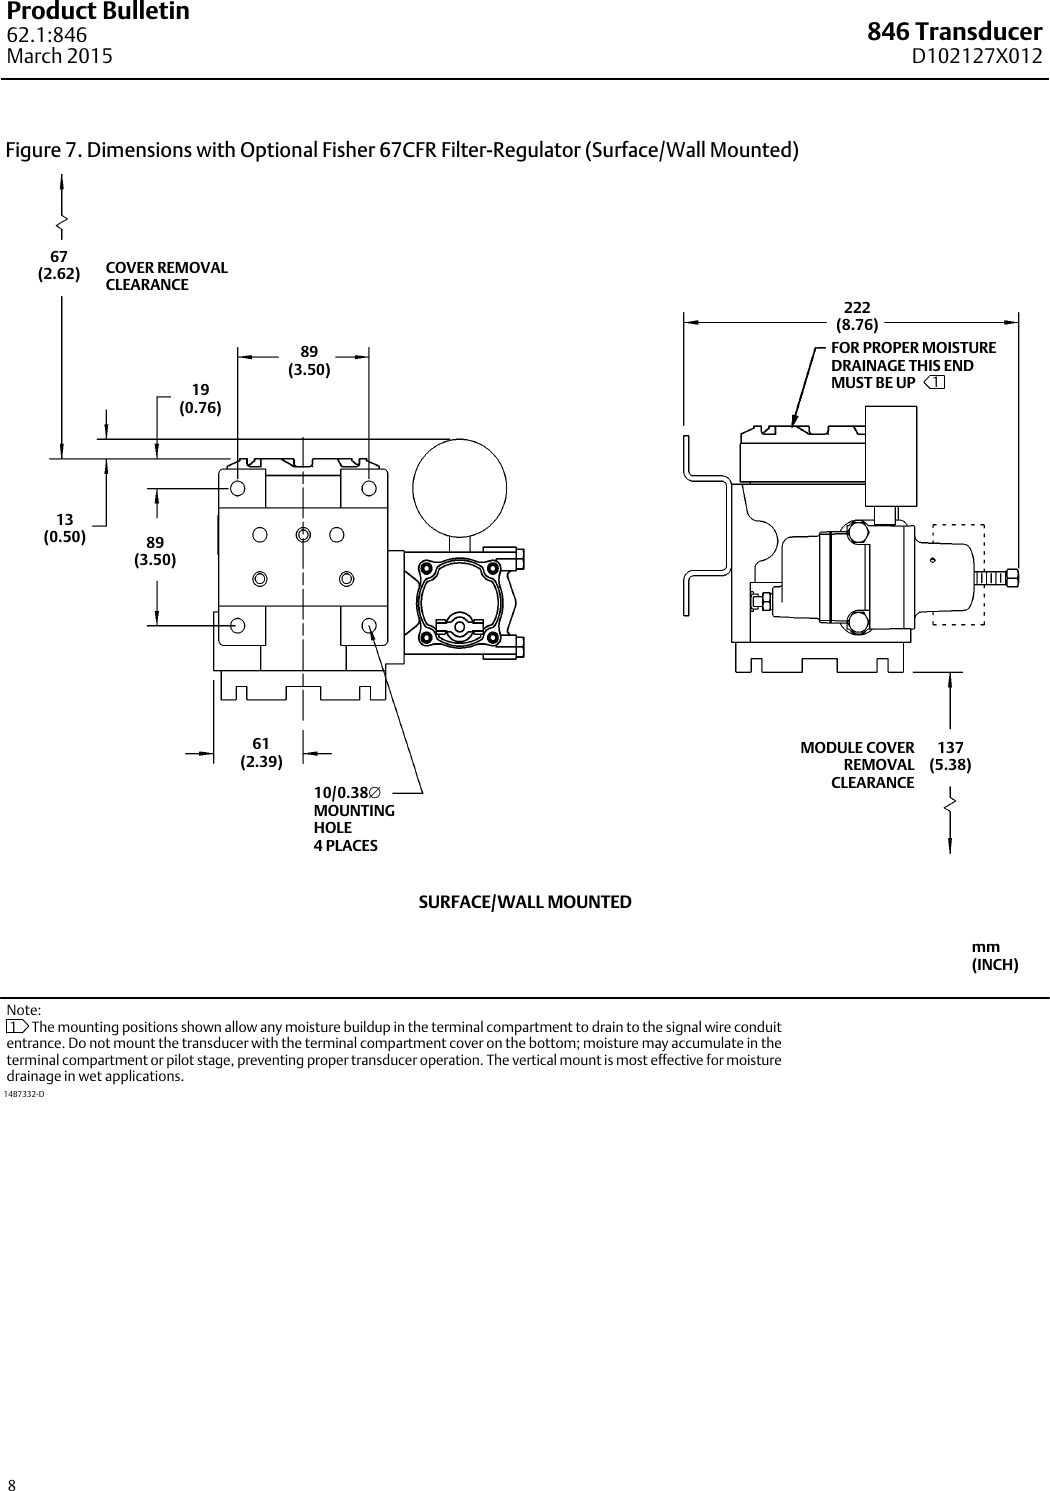 Emerson Fisher 846 Data Sheet D102127x012 Mar15 Aq Drawing Information Housing Diagram Page 2 Wiring 8 Of 12